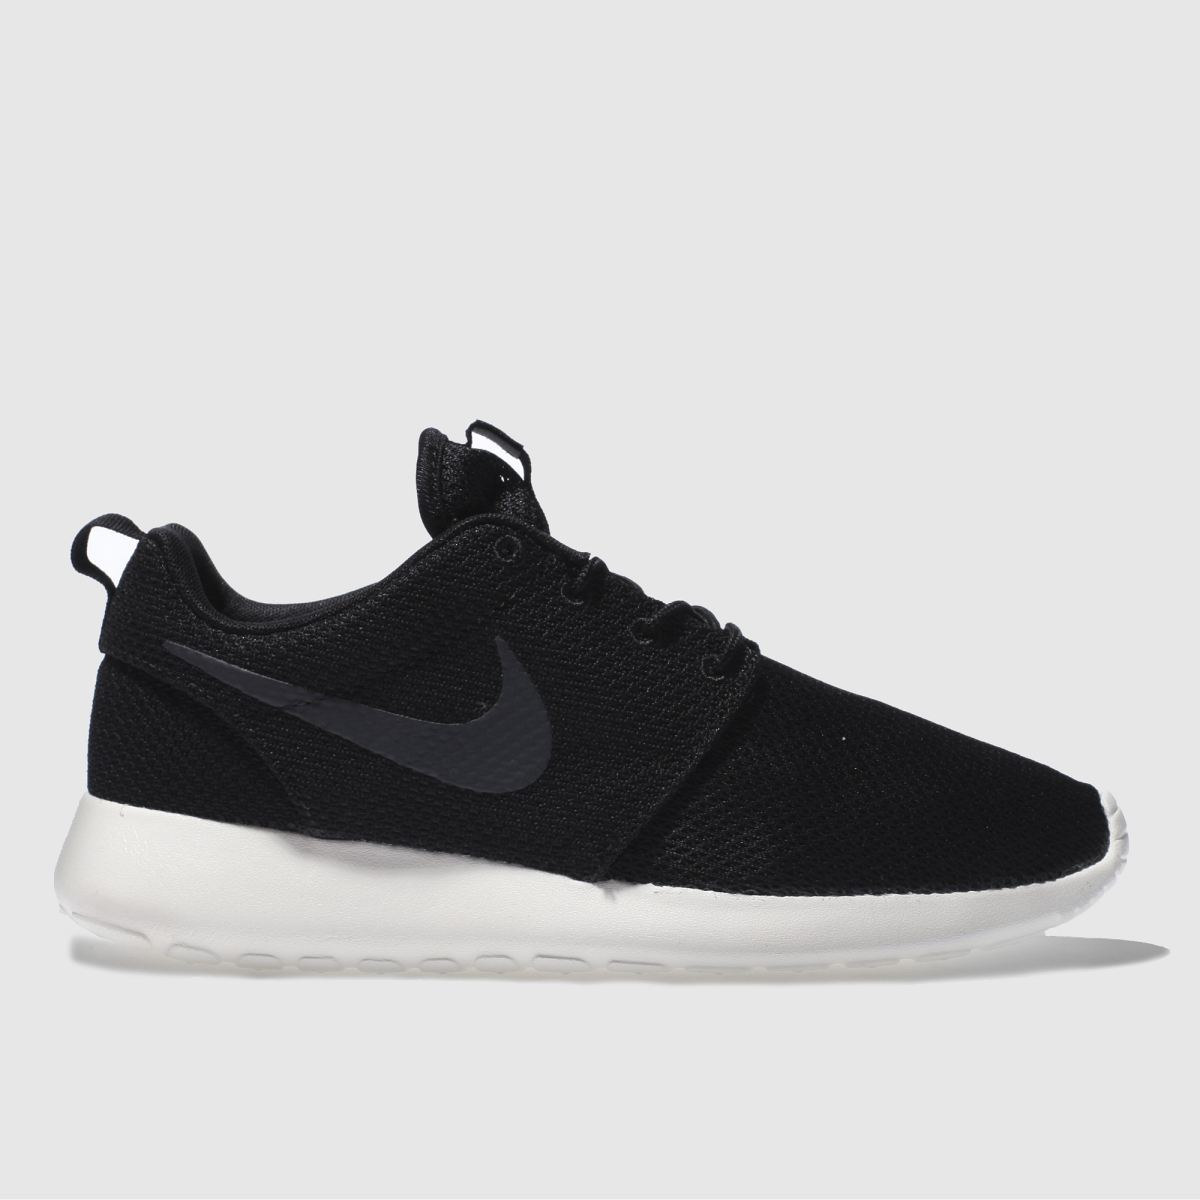 sale retailer 85580 5d274 Nike Men s Roshe Run Casual Shoes, Black White - 9.0